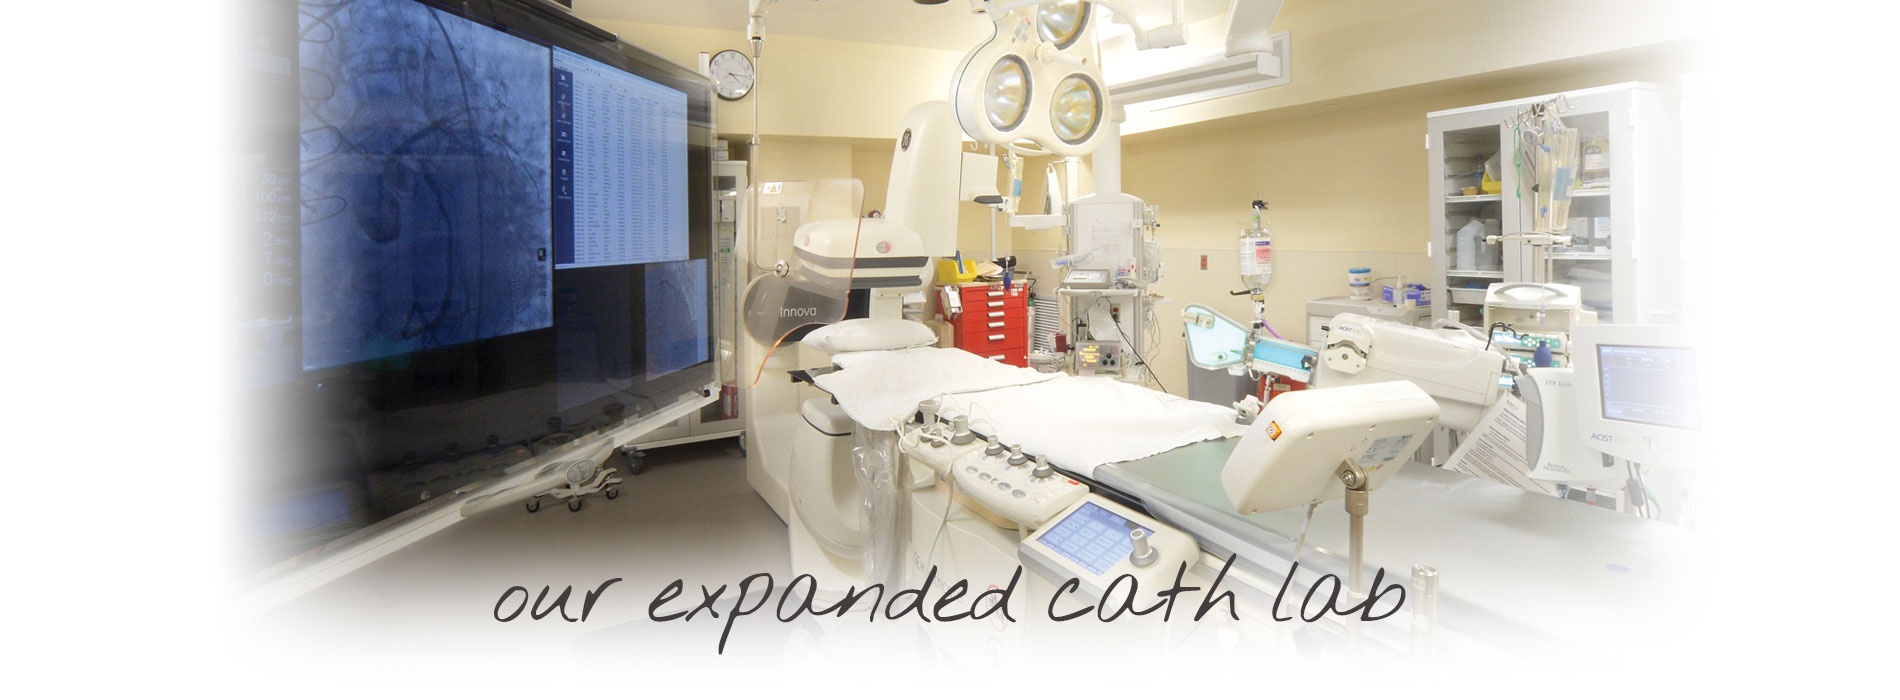 Saratoga Hospital Cardiovascular & Interventional Suite with big computer screen and hospital table